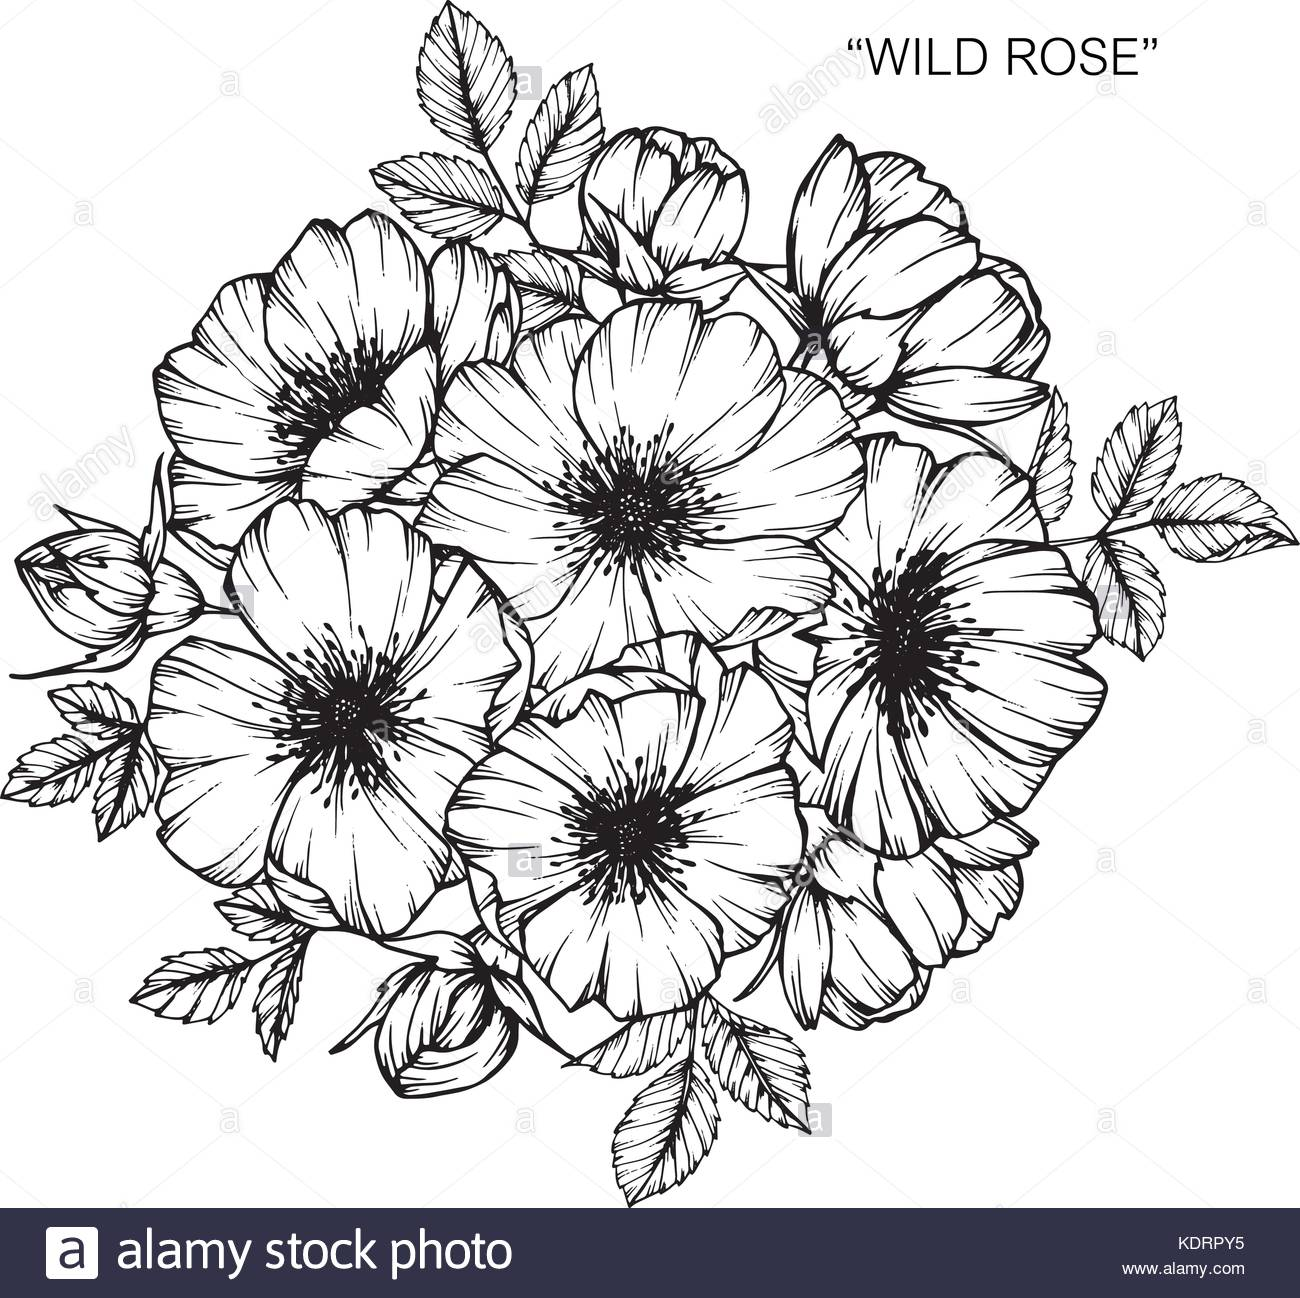 1300x1298 Wild Rose Stock Vector Images